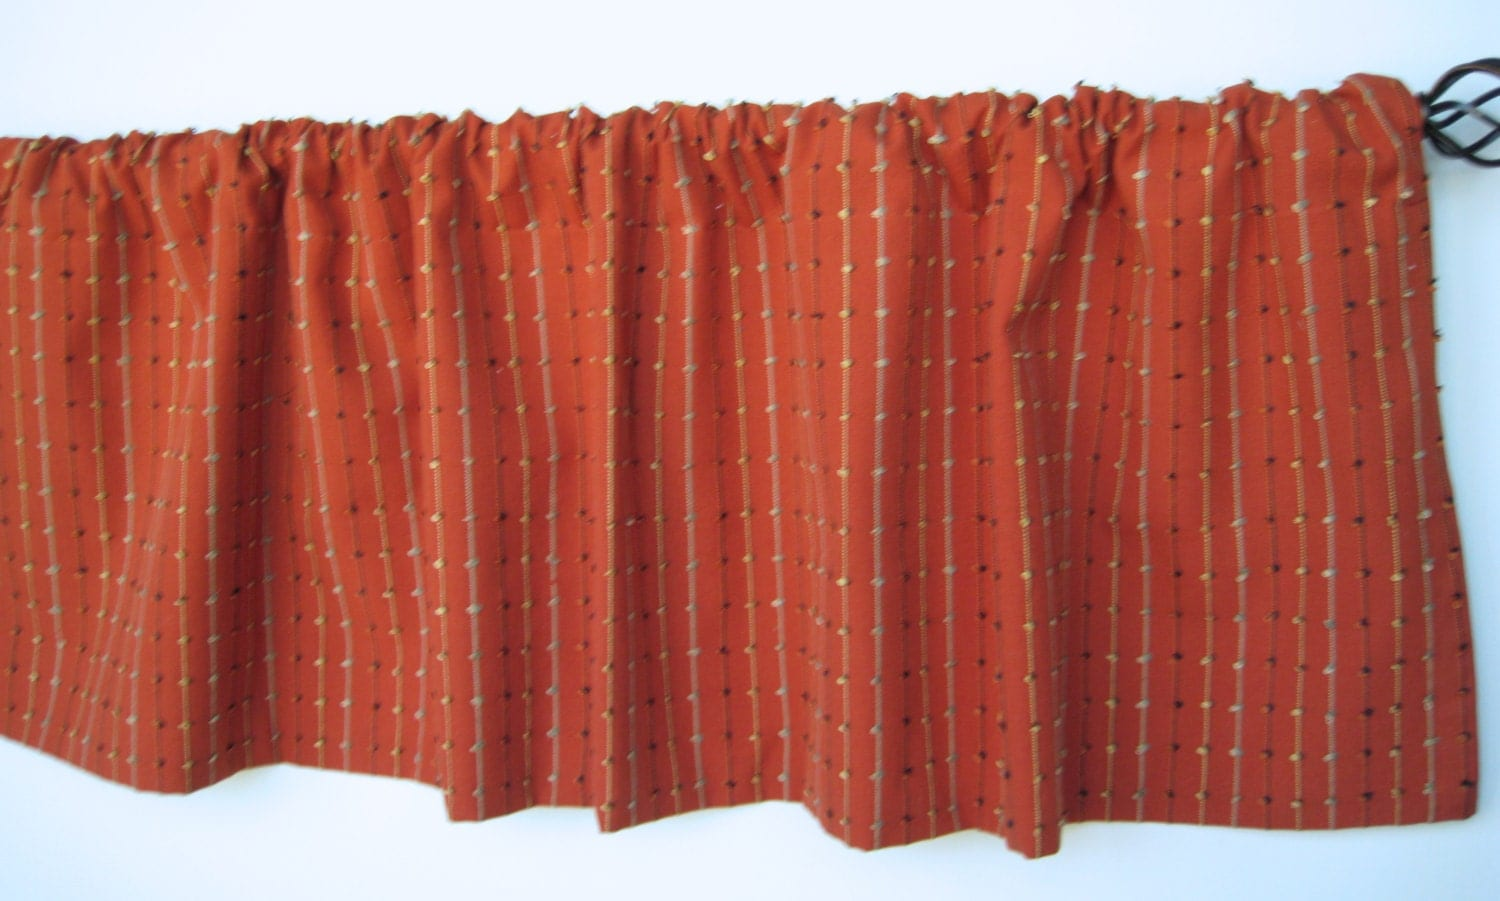 52x16 Valance Chili Rust Colored Valance Rust Window